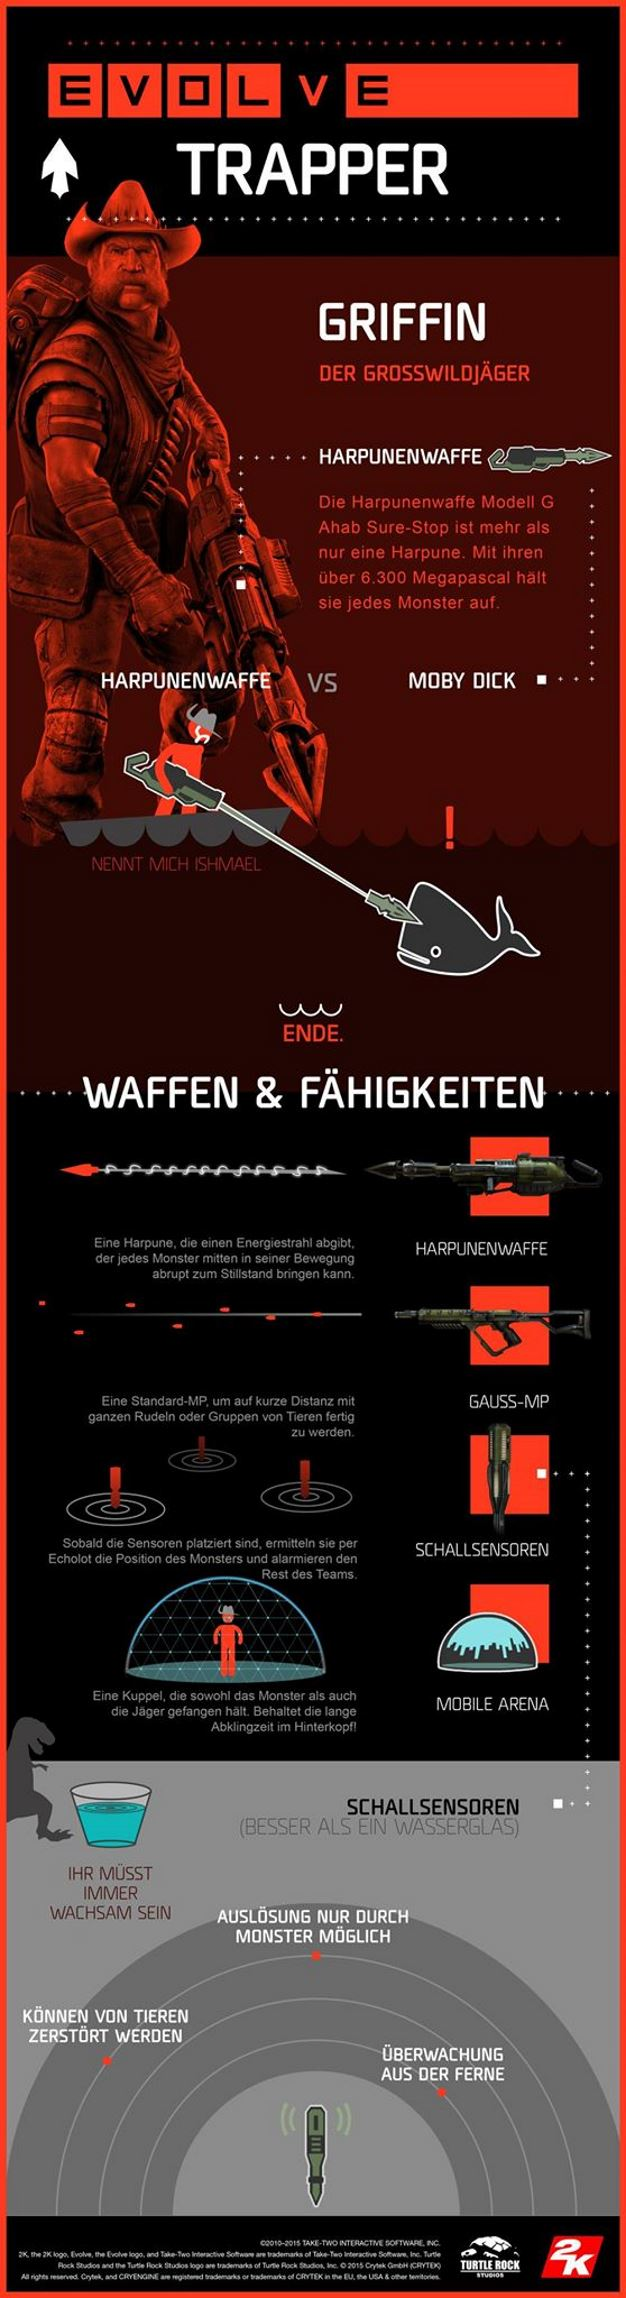 Evole Trapper Griffin Infografik